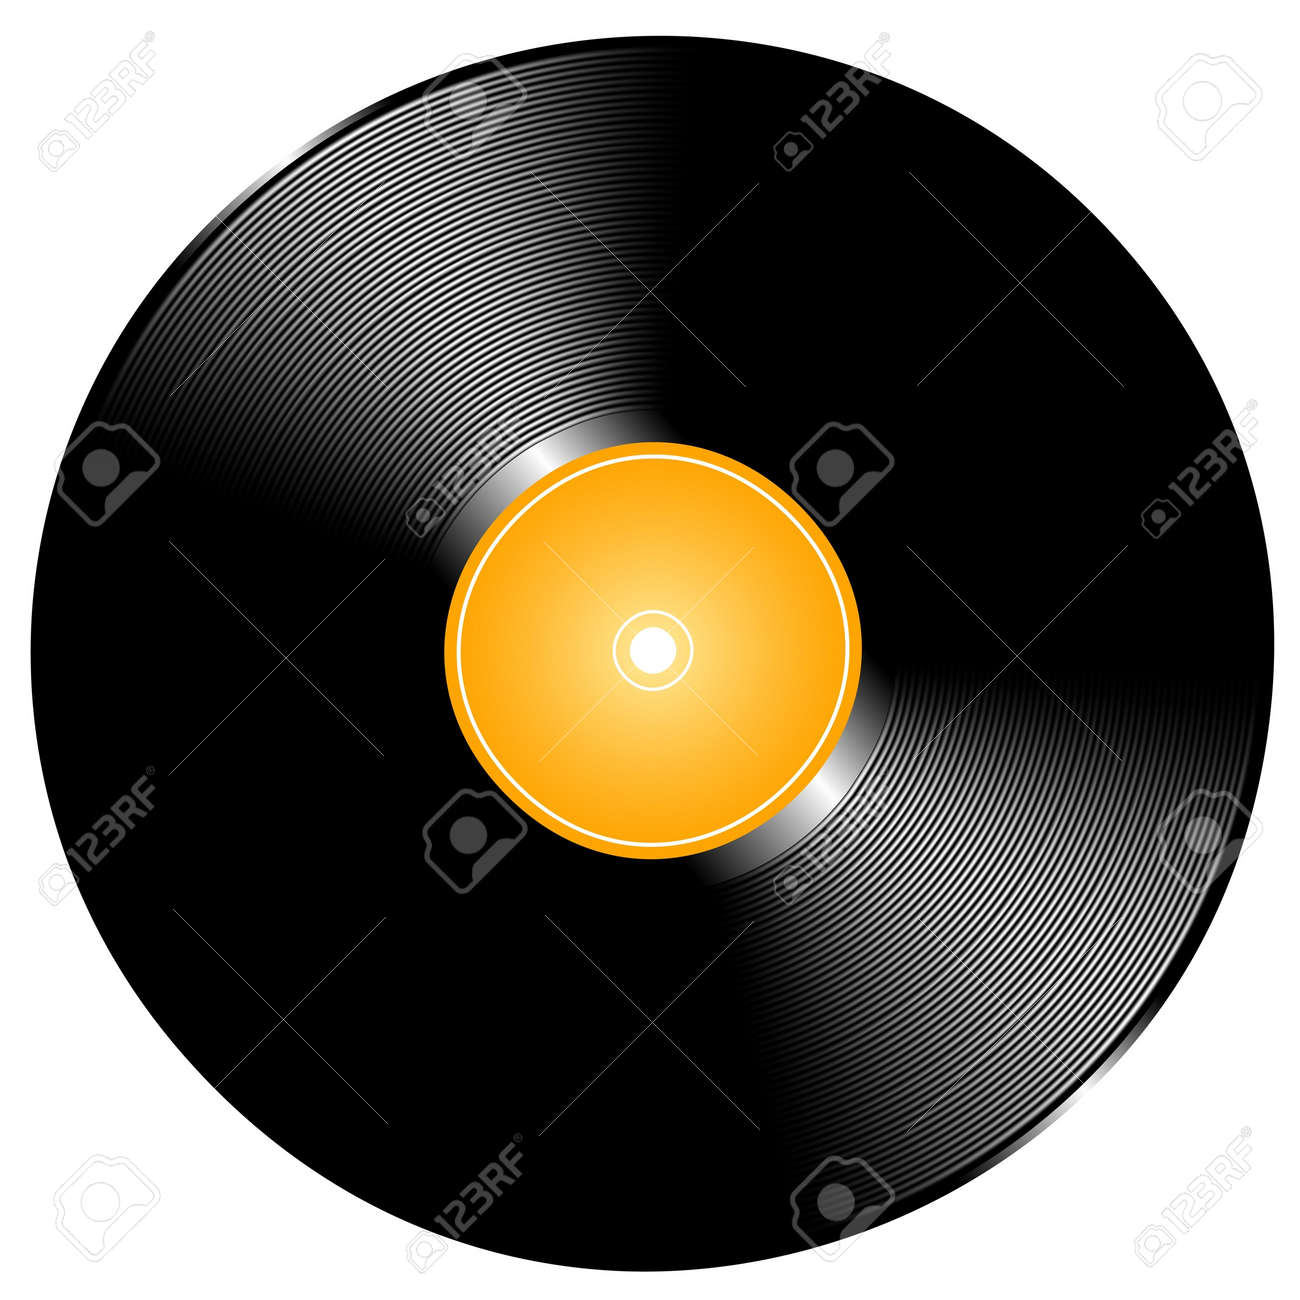 Editable vector illustration of a vinyl record made using gradient meshes Stock Vector - 9317911